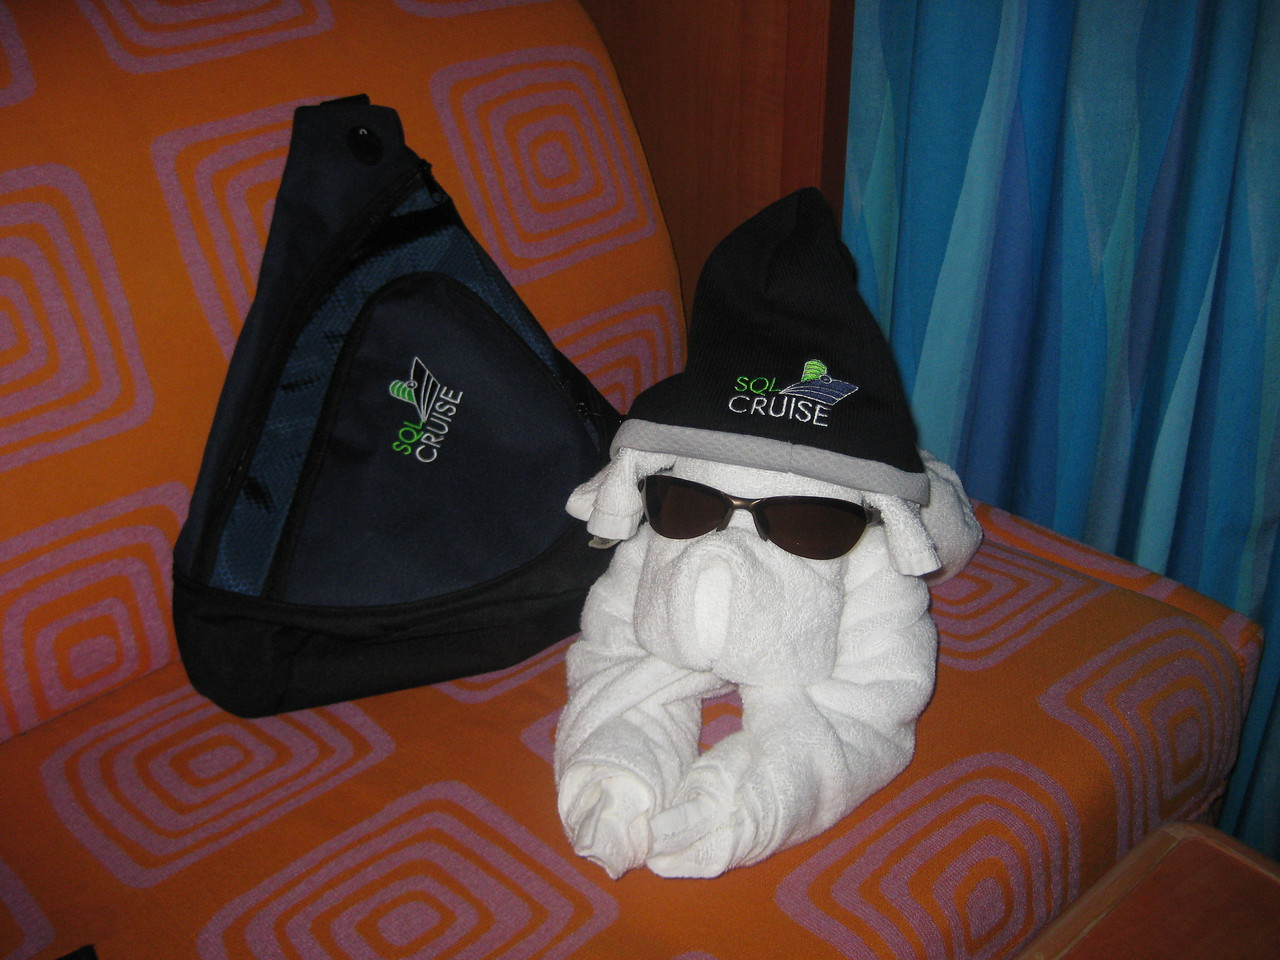 SQLCruise puppy modelling the gear with style.